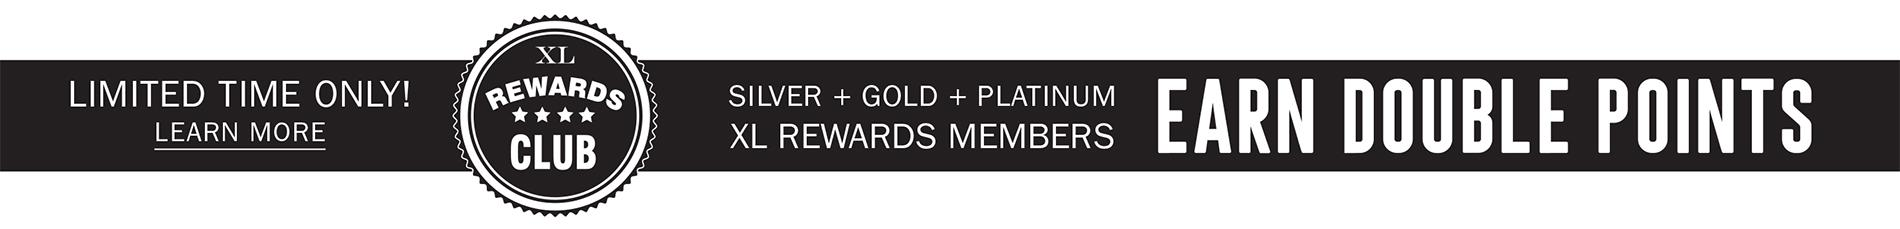 SILVER + GOLD + PLATINUM | EARN DOUBLE POINTS